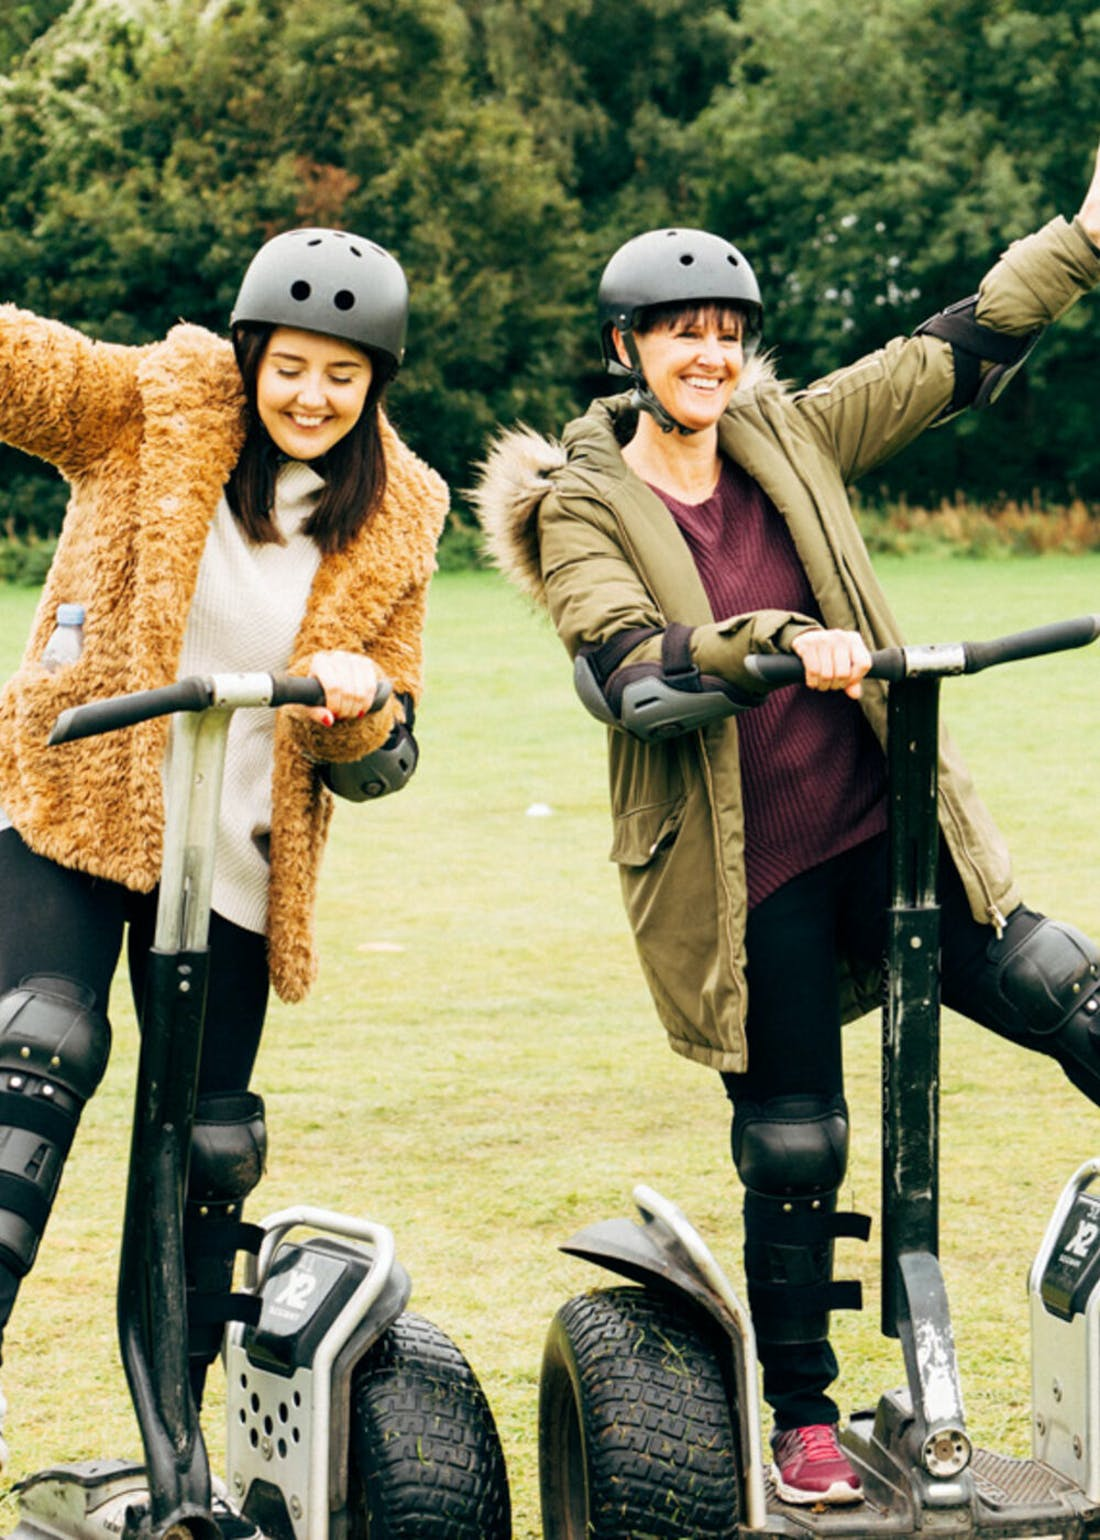 Virgin Experience Days Segway Adventure for 2